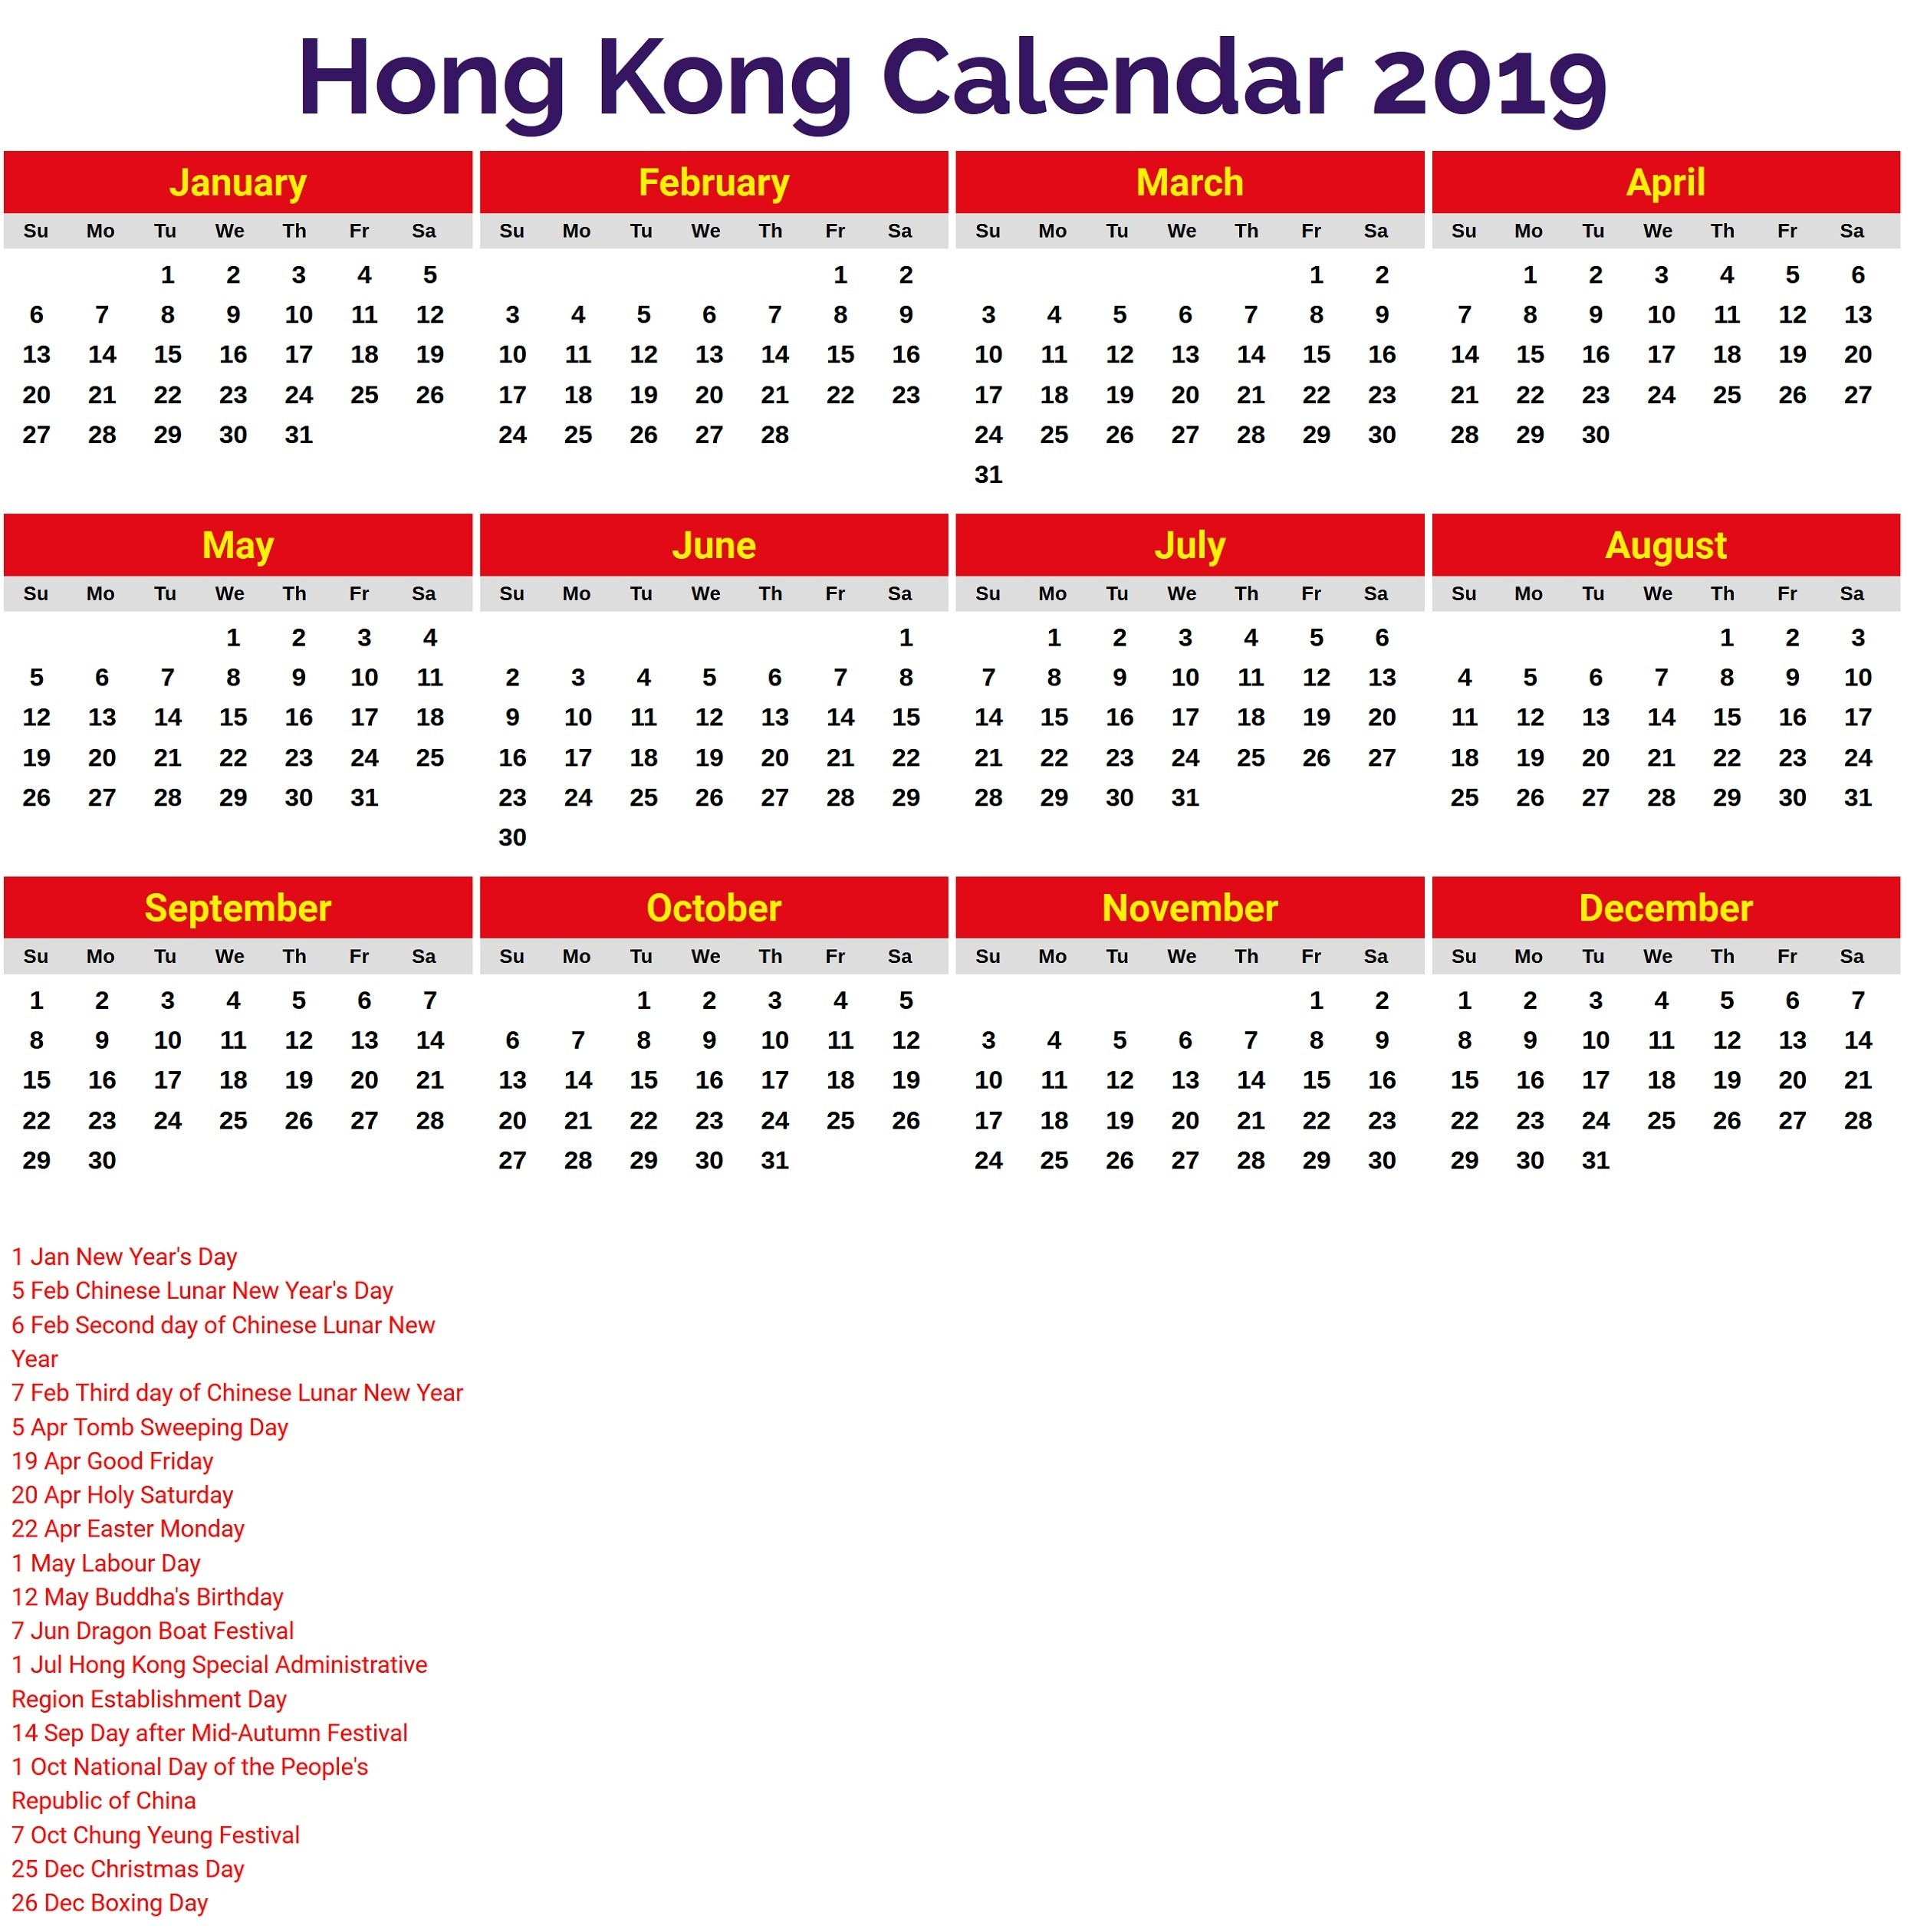 2019 Calendar With Holidays Printable | Calendar Shelter-January 2020 Calendar Hong Kong